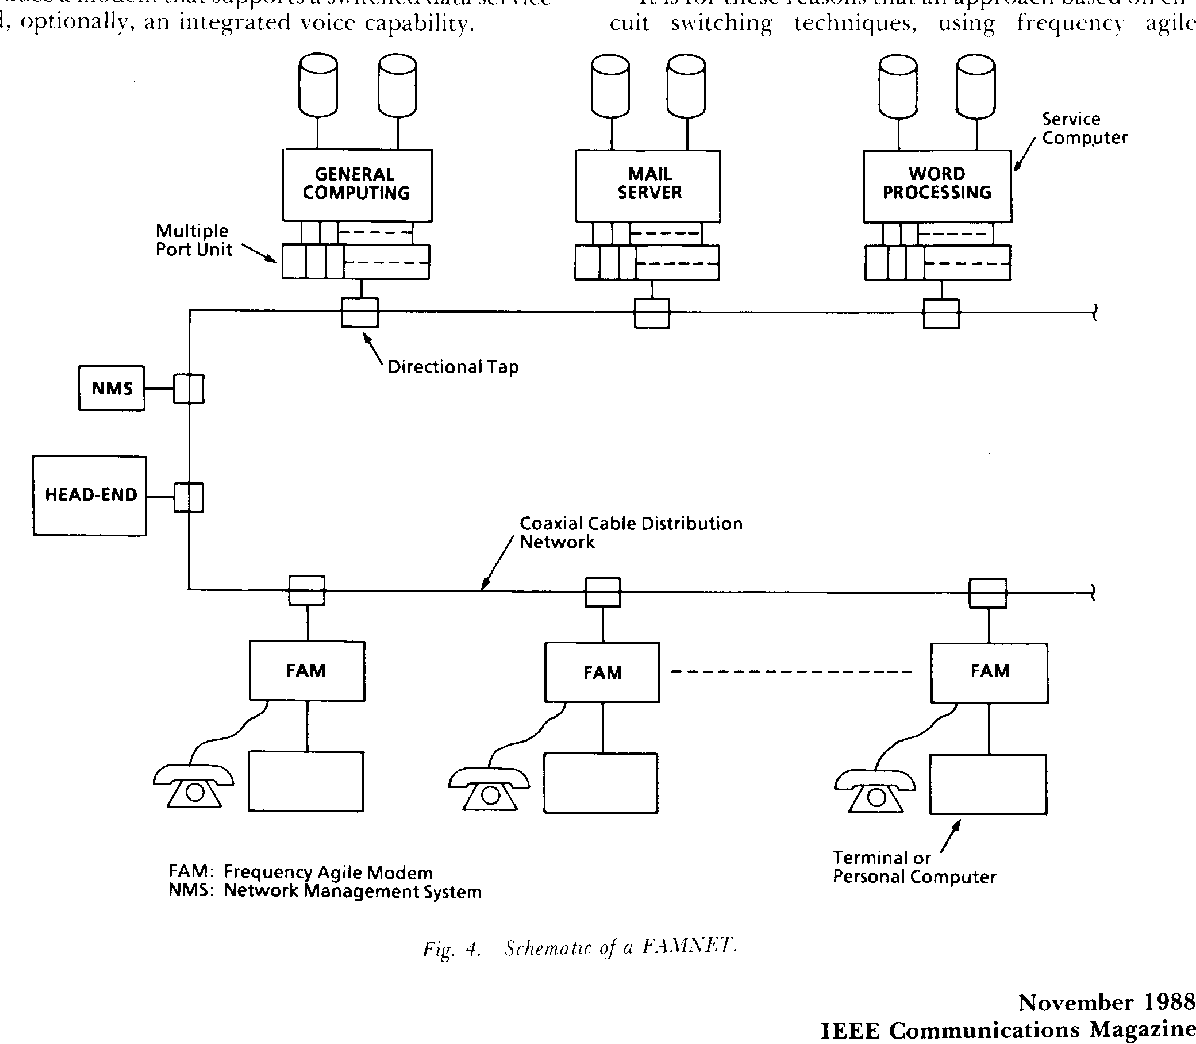 Design Issues Relating To The Provision Of Integrated Services On A Coax Cable Schematic Broadband Coaxial Local Area Network Semantic Scholar